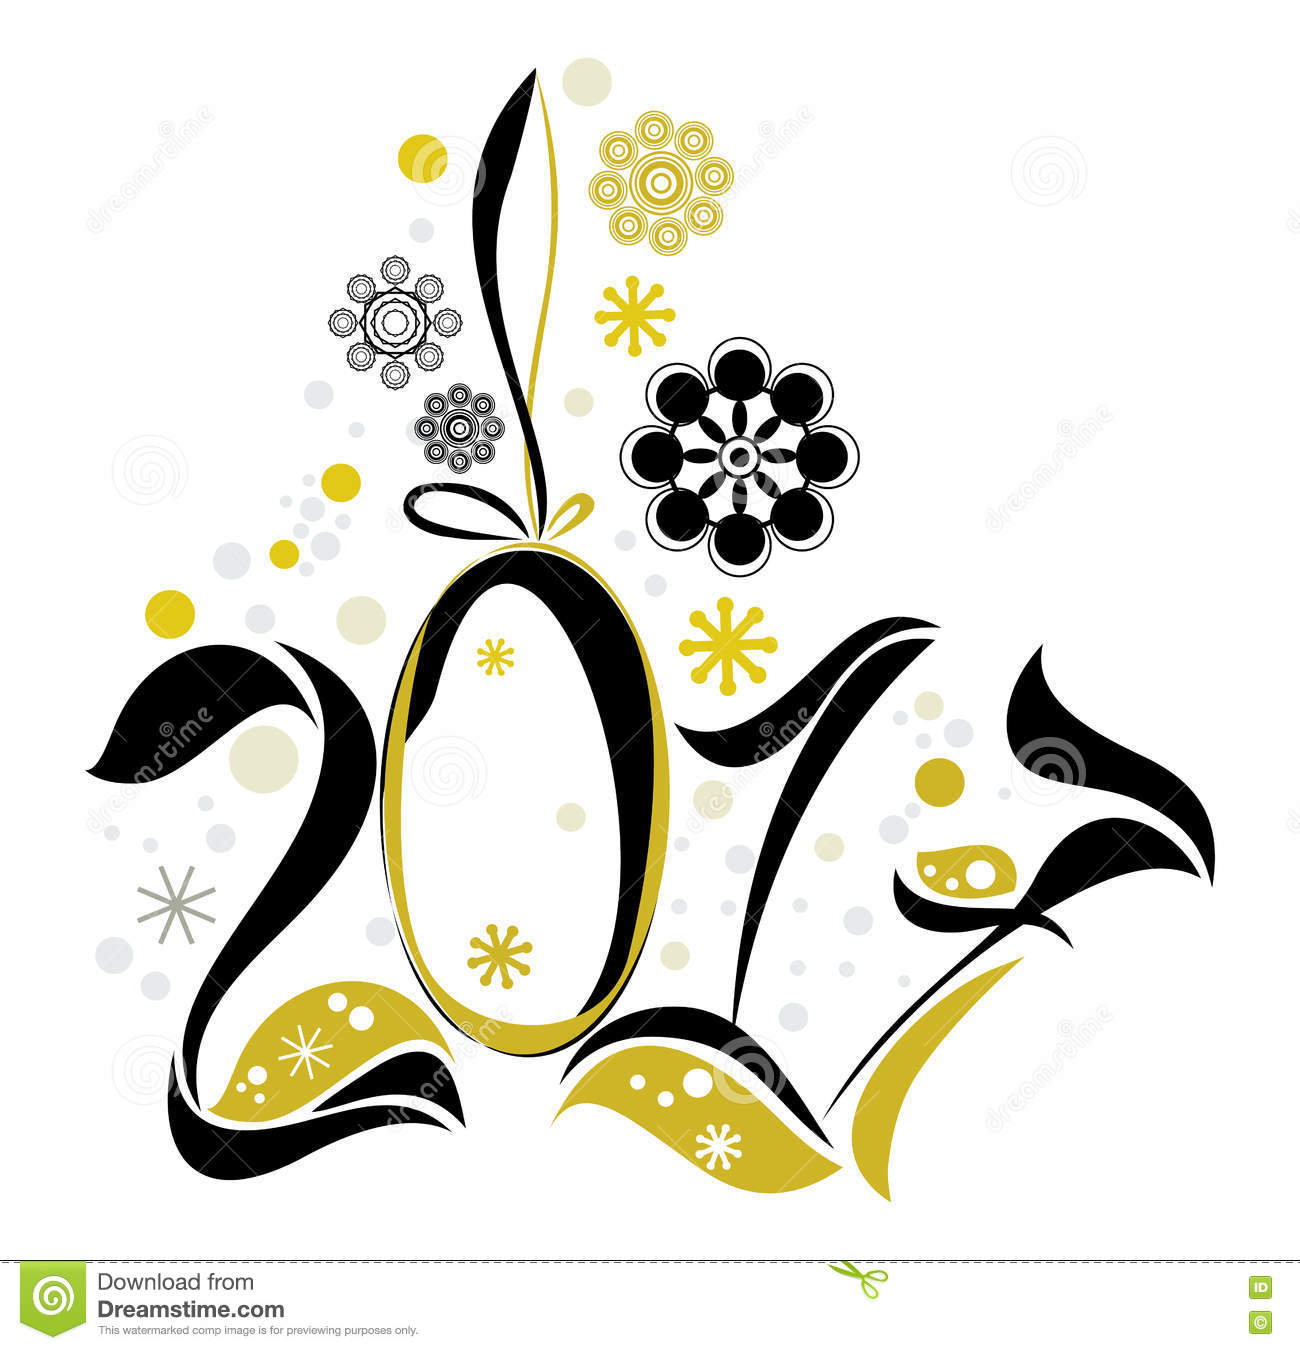 happy new year 2017 gold black numbers and snowflakes